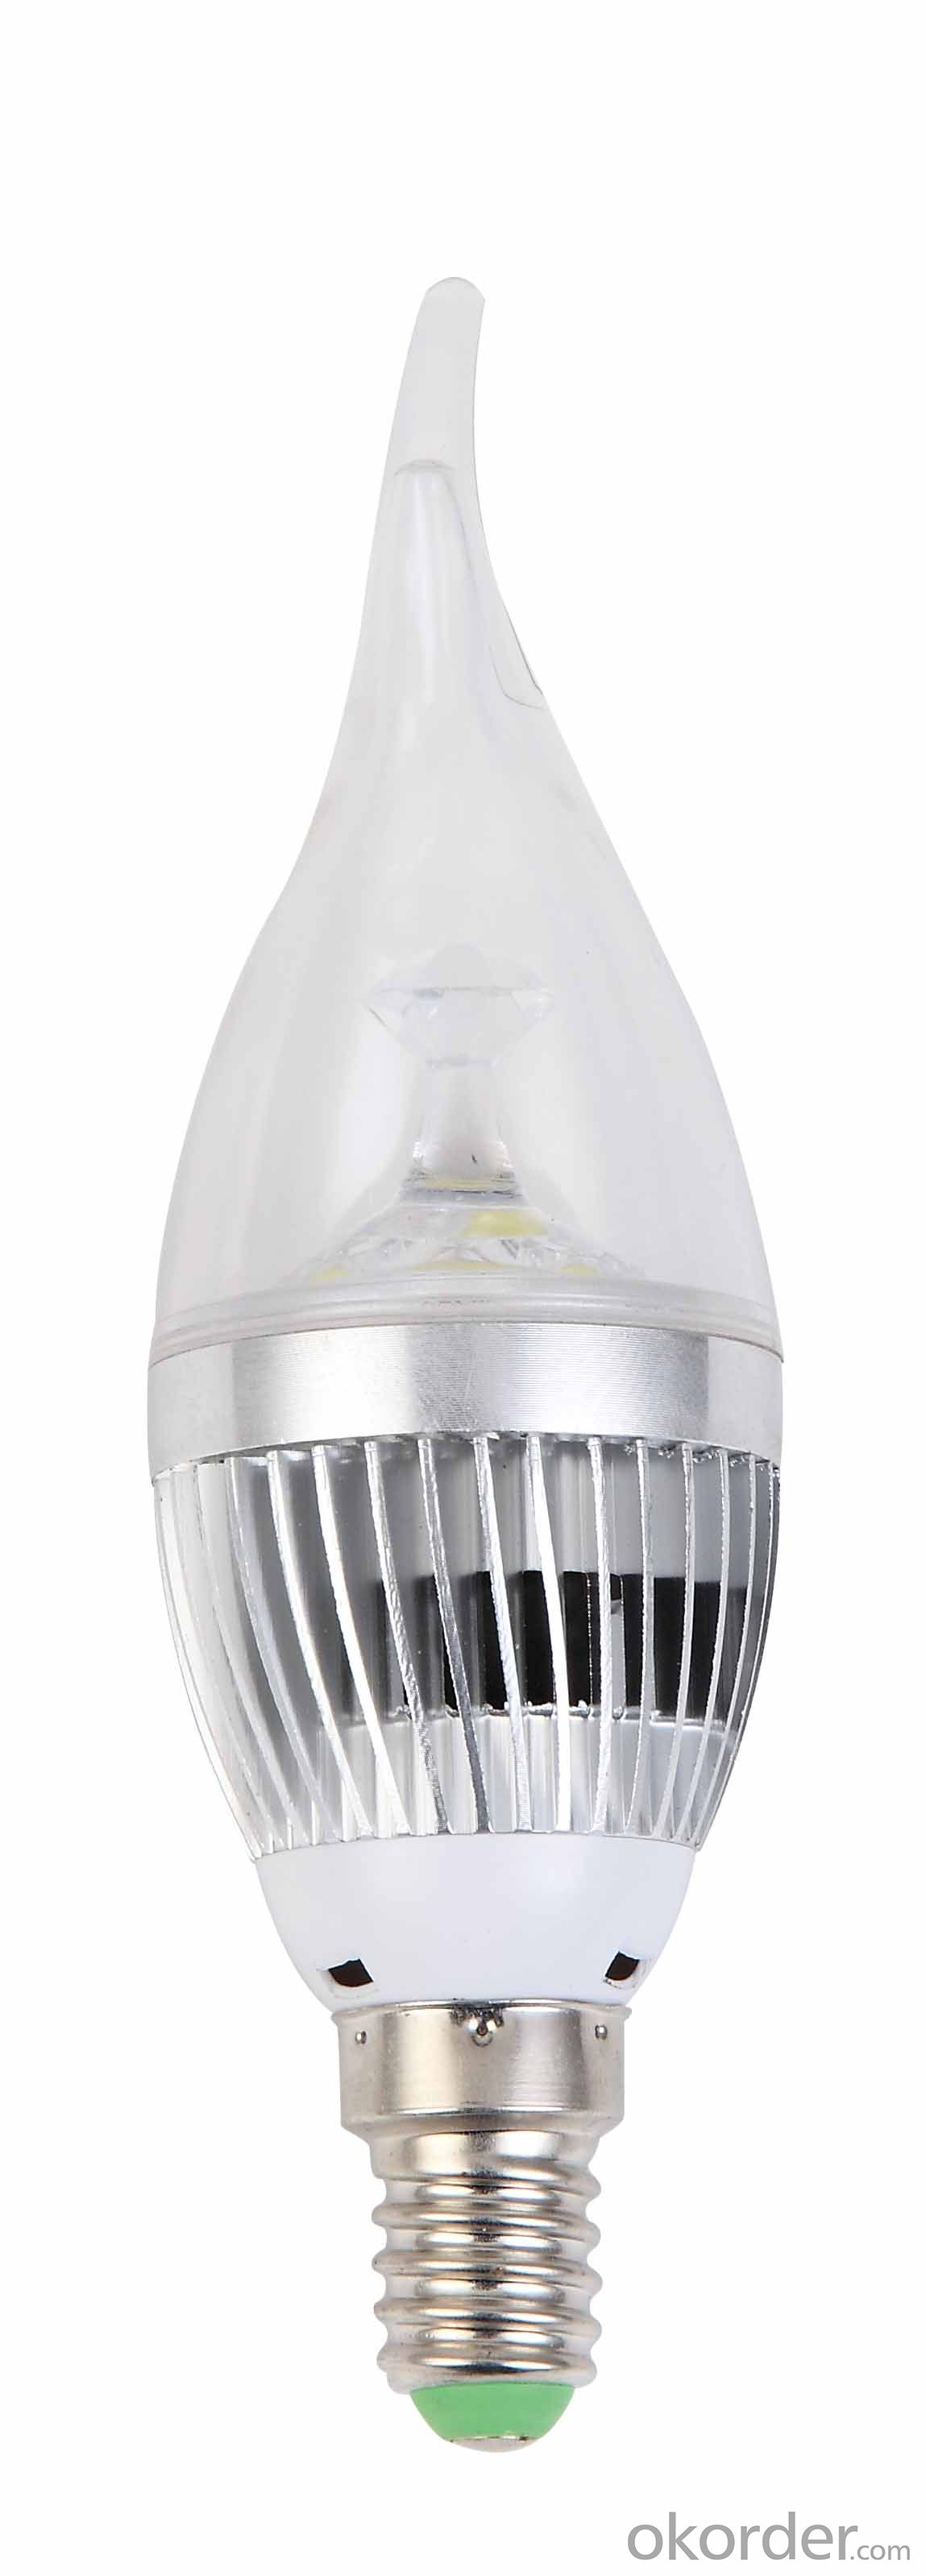 LED CANDLE LIGHT E27;E14 3W;5W HIGH QUALITY LOW PRICE